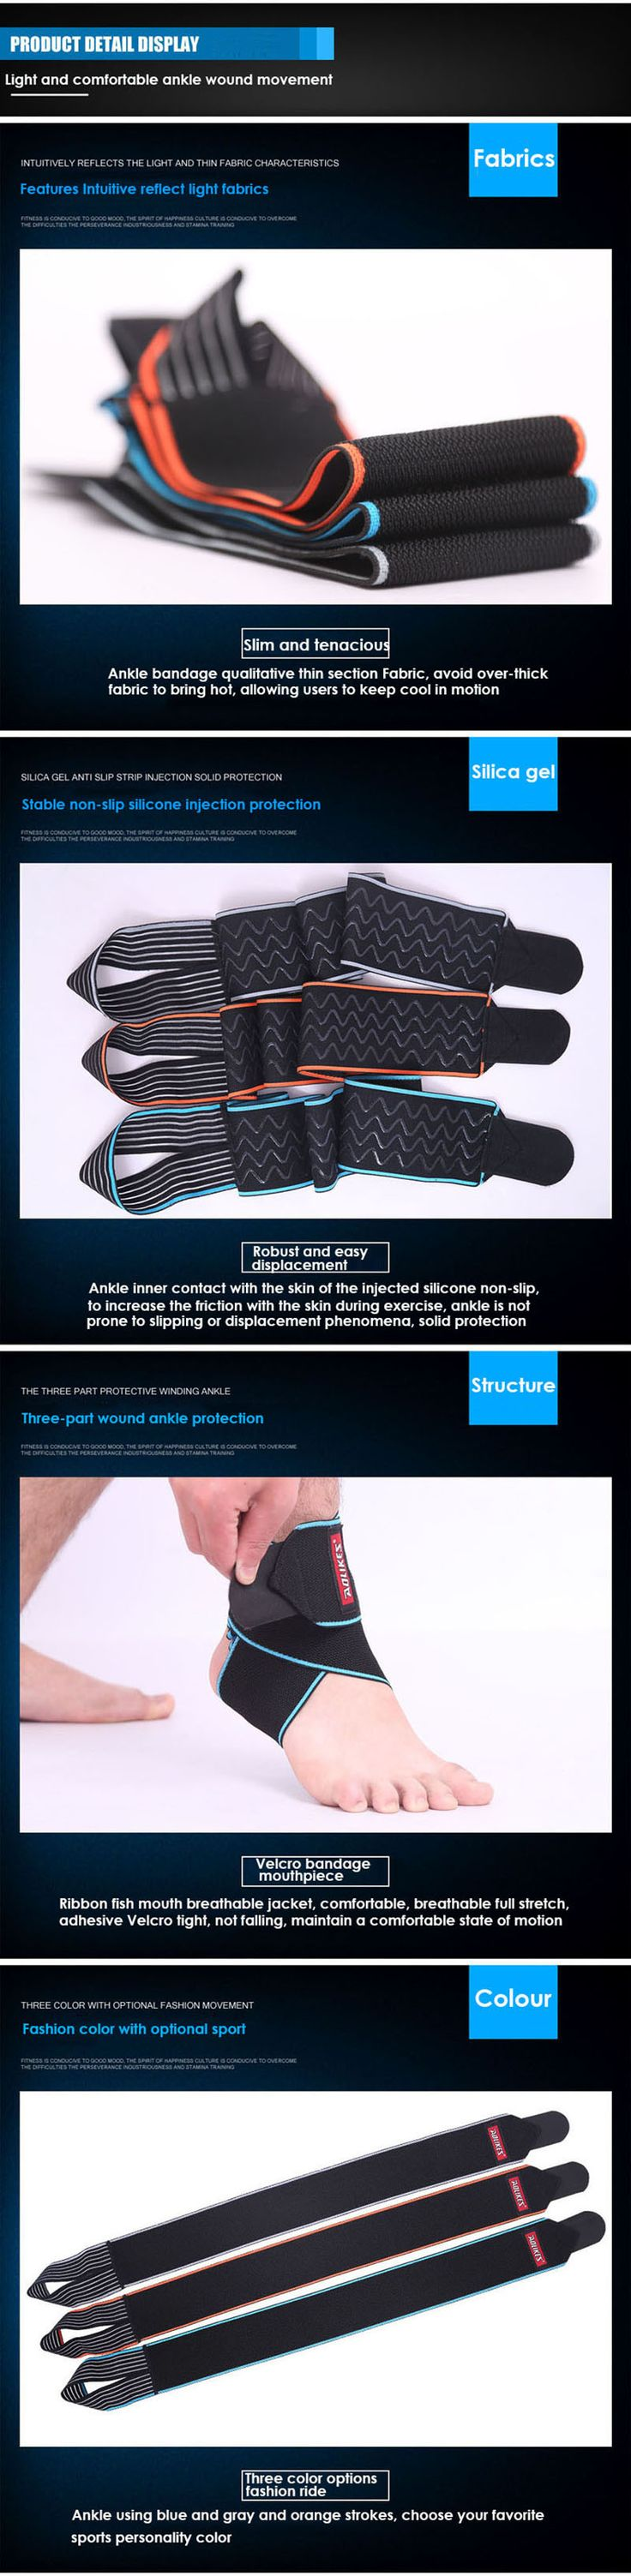 Sport Protector Ankle Brace Protertor Silicon Anti-slip Breathable Foot Pad Sale - Banggood.com